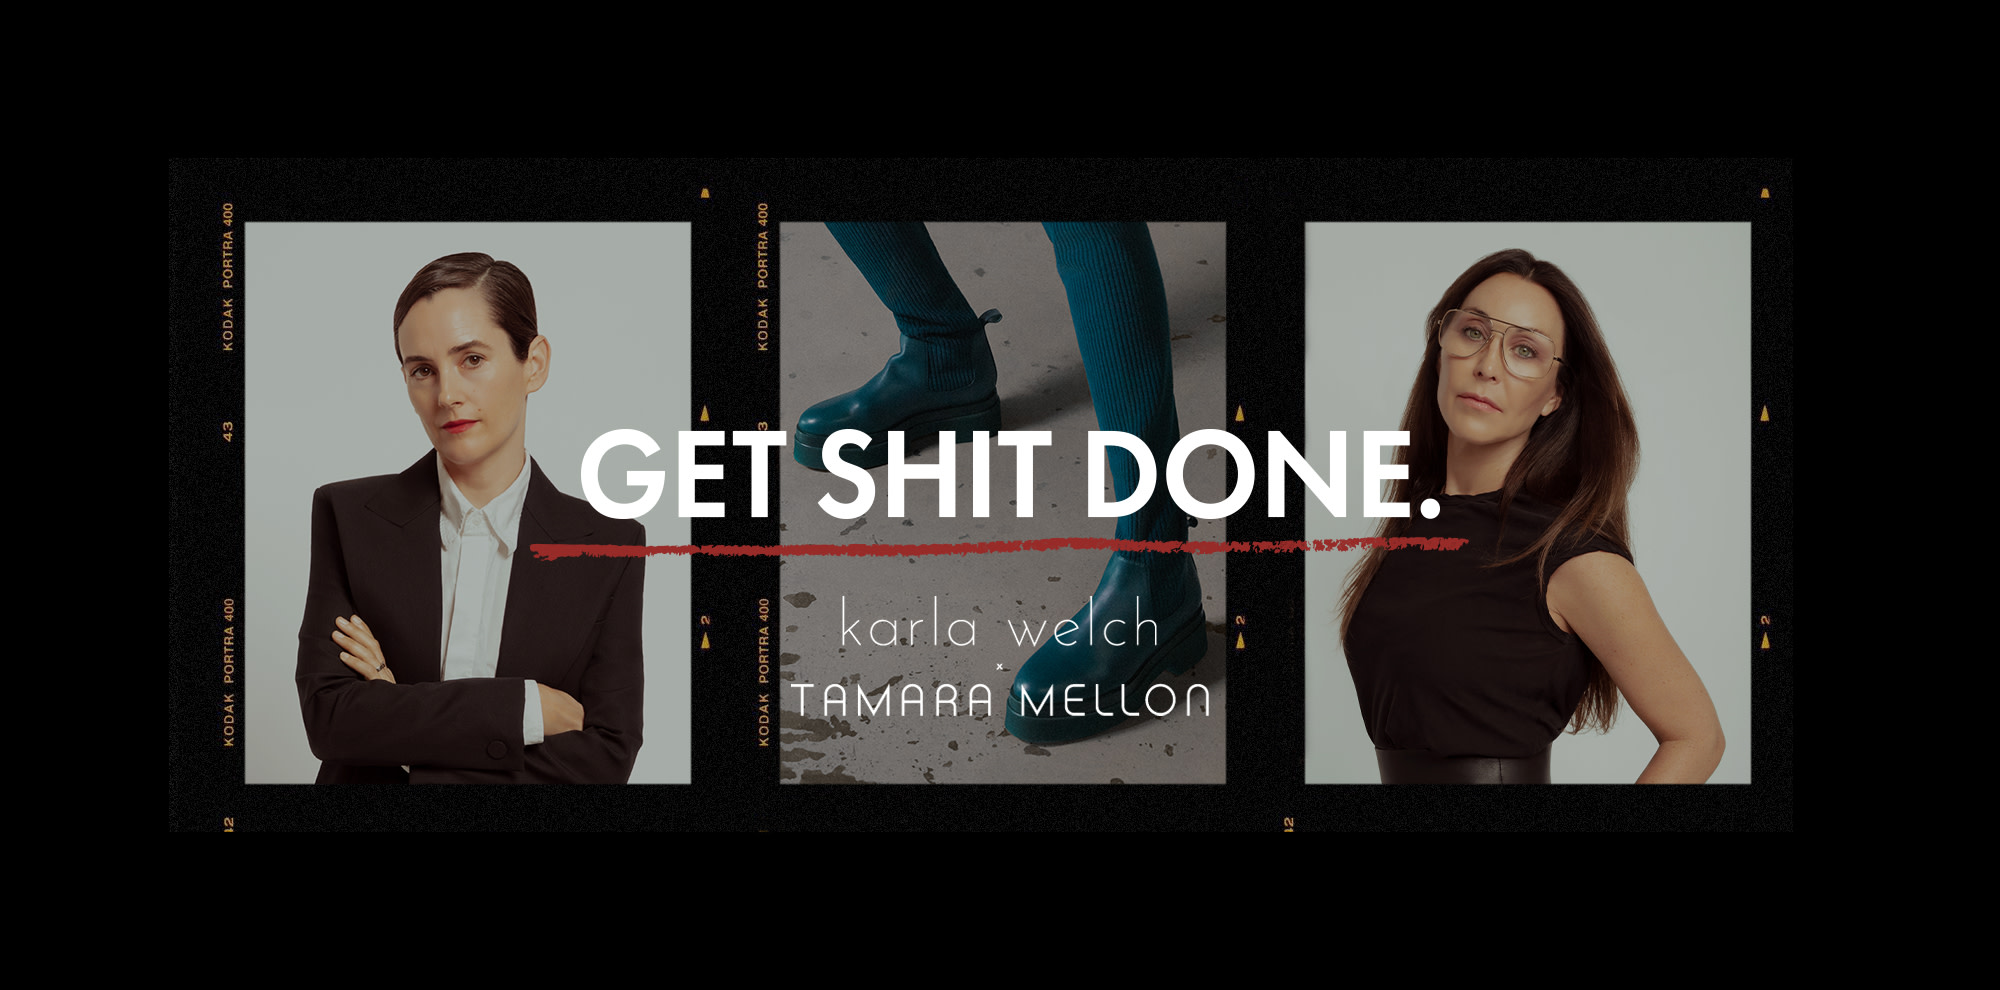 Tamara Mellon x Karla Welch Get Shit Done